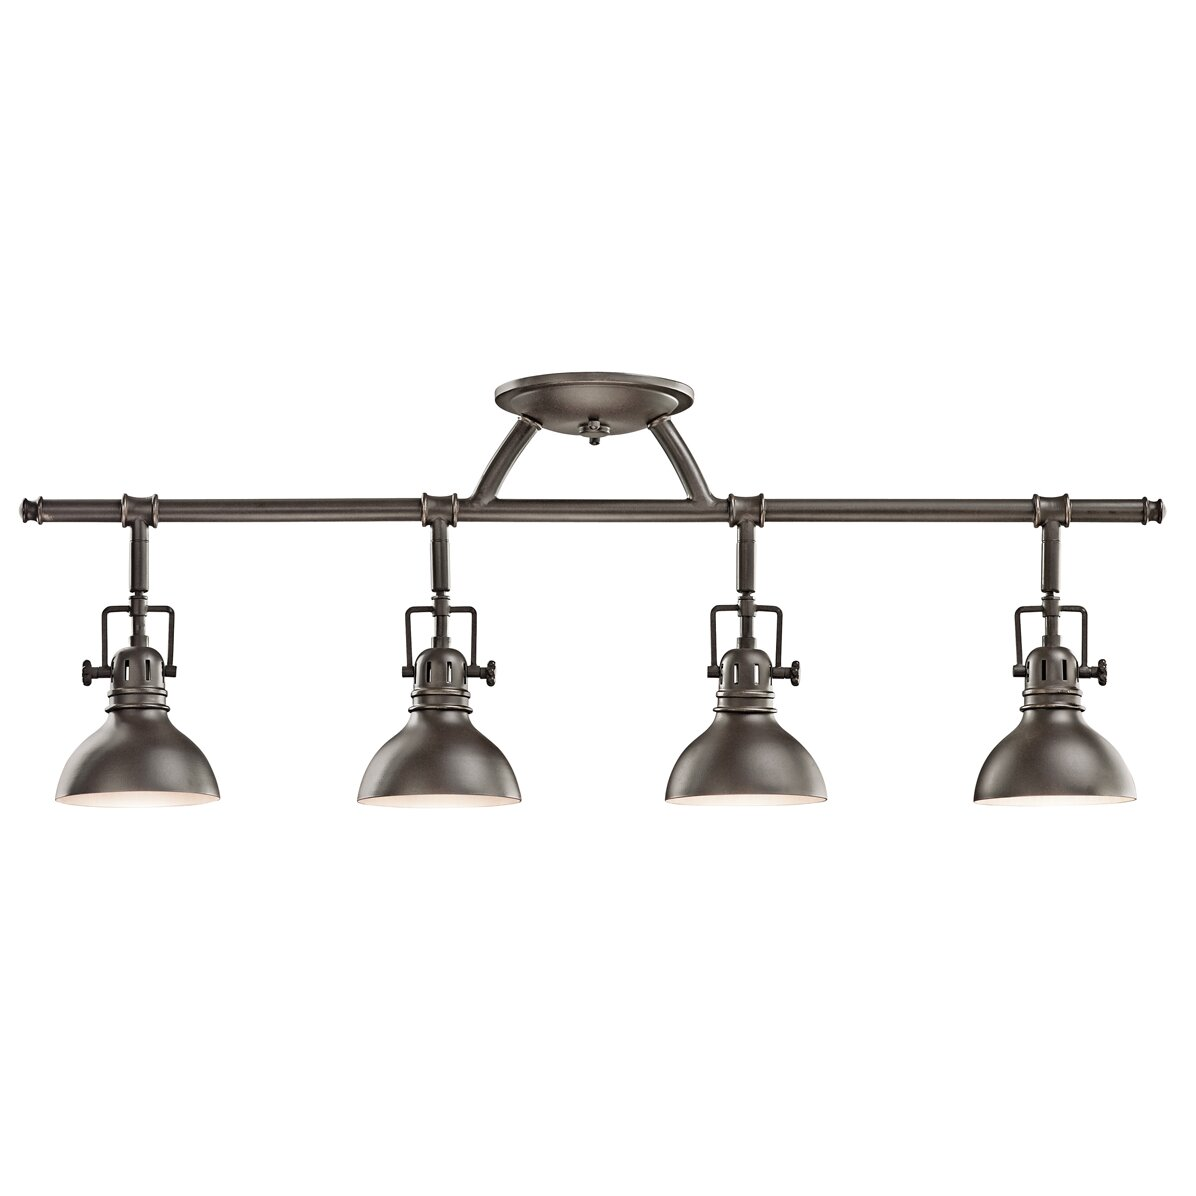 Light Fixtures Kitchen: Kichler 4 Light Semi Flush Mount & Reviews